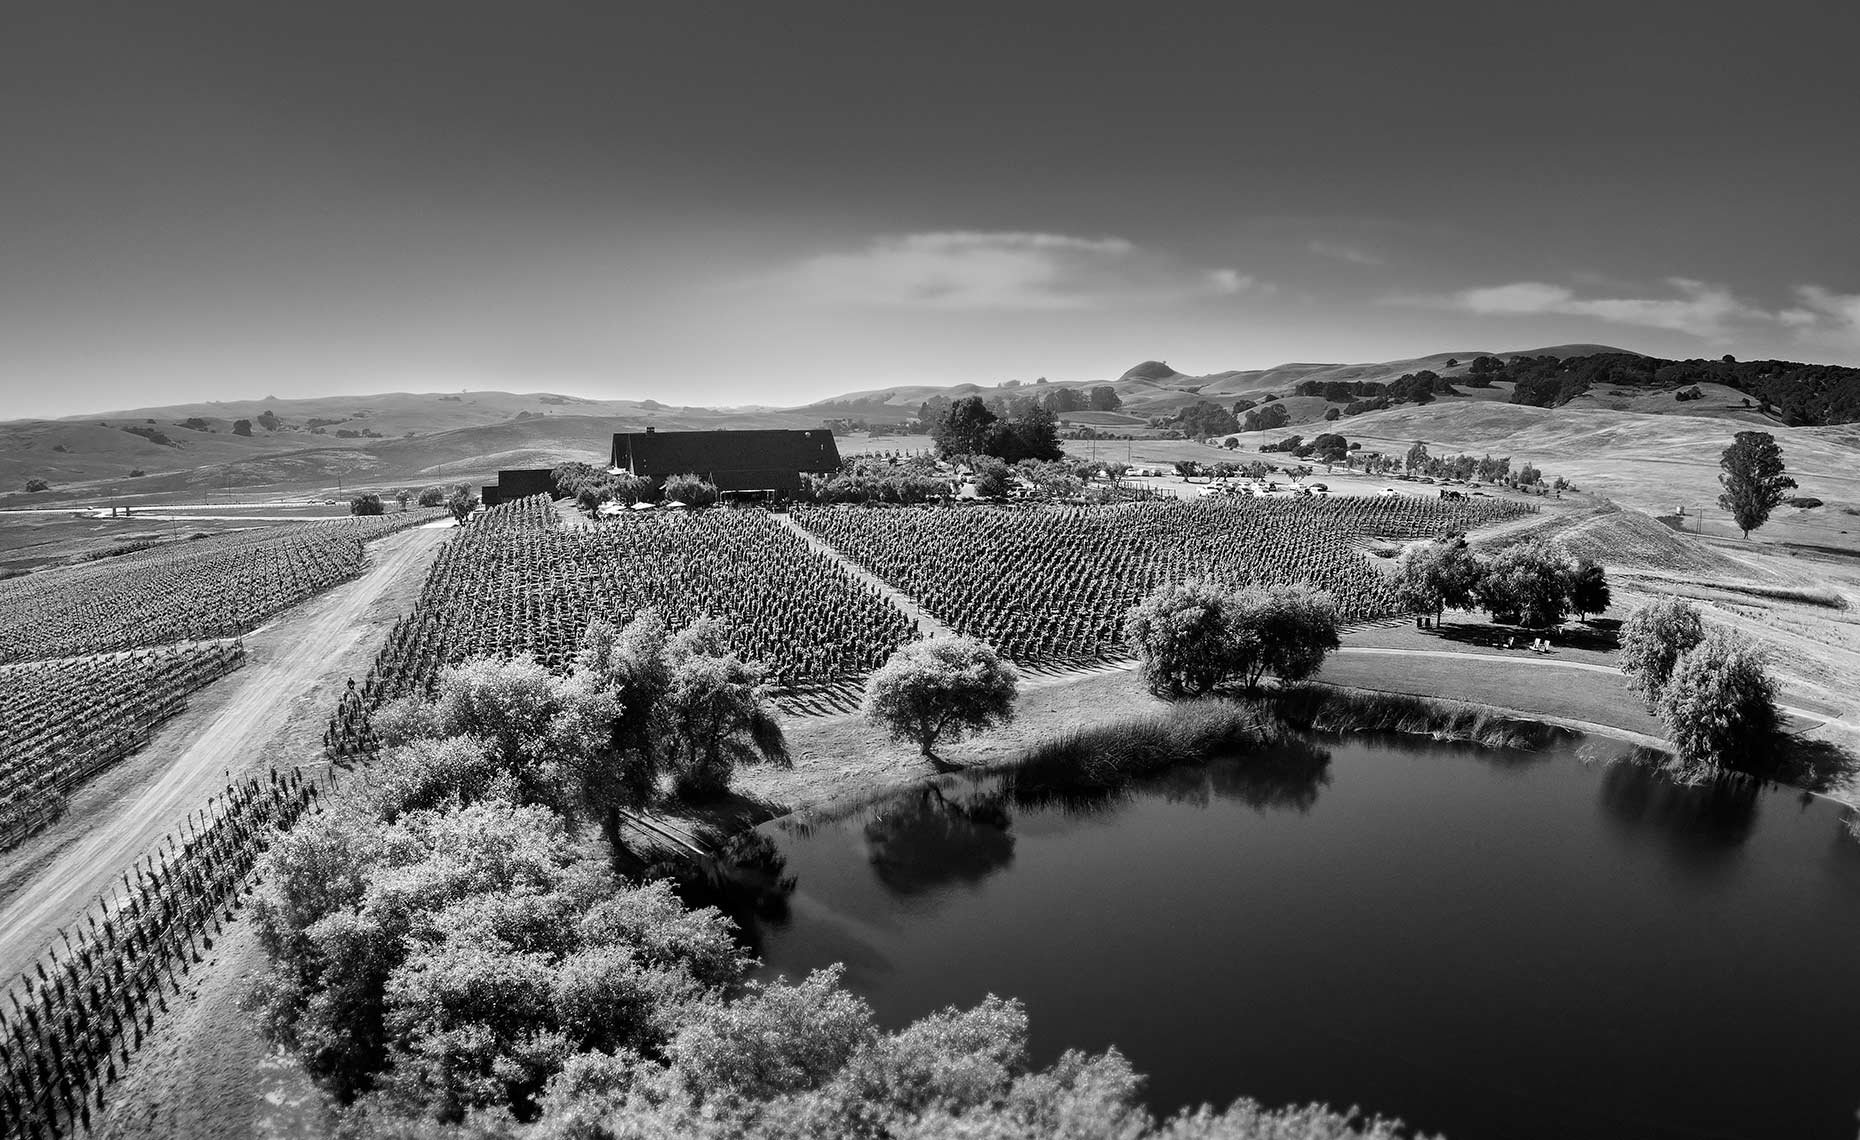 rams gate winery aerial